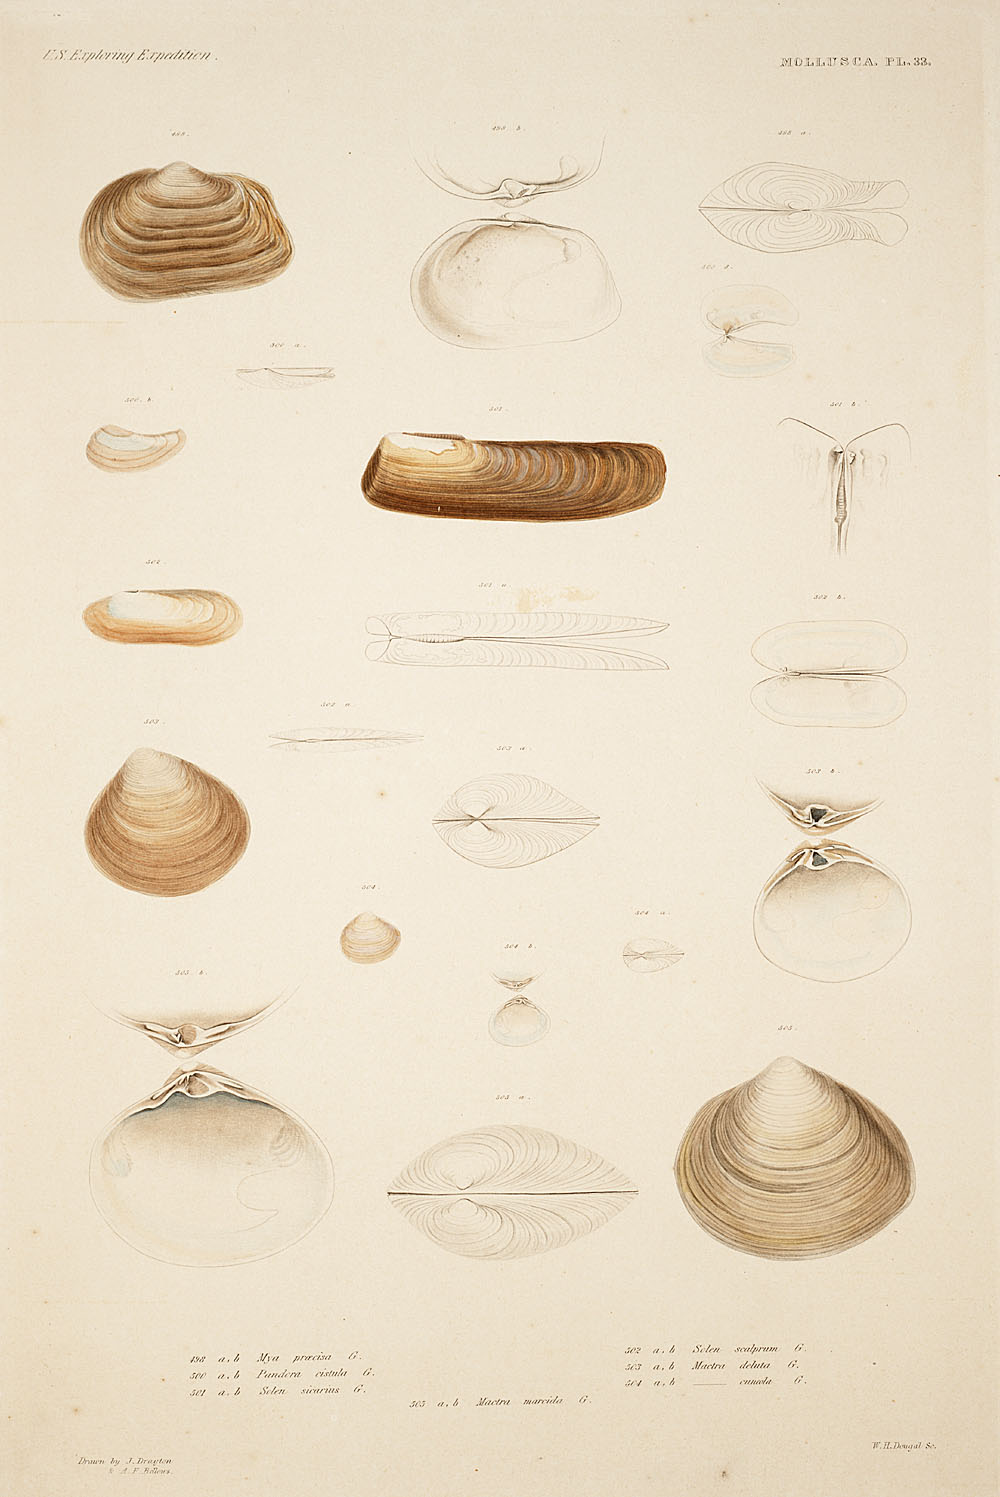 Mollusca, Pl. 33,  Image number:sil19-18-087b